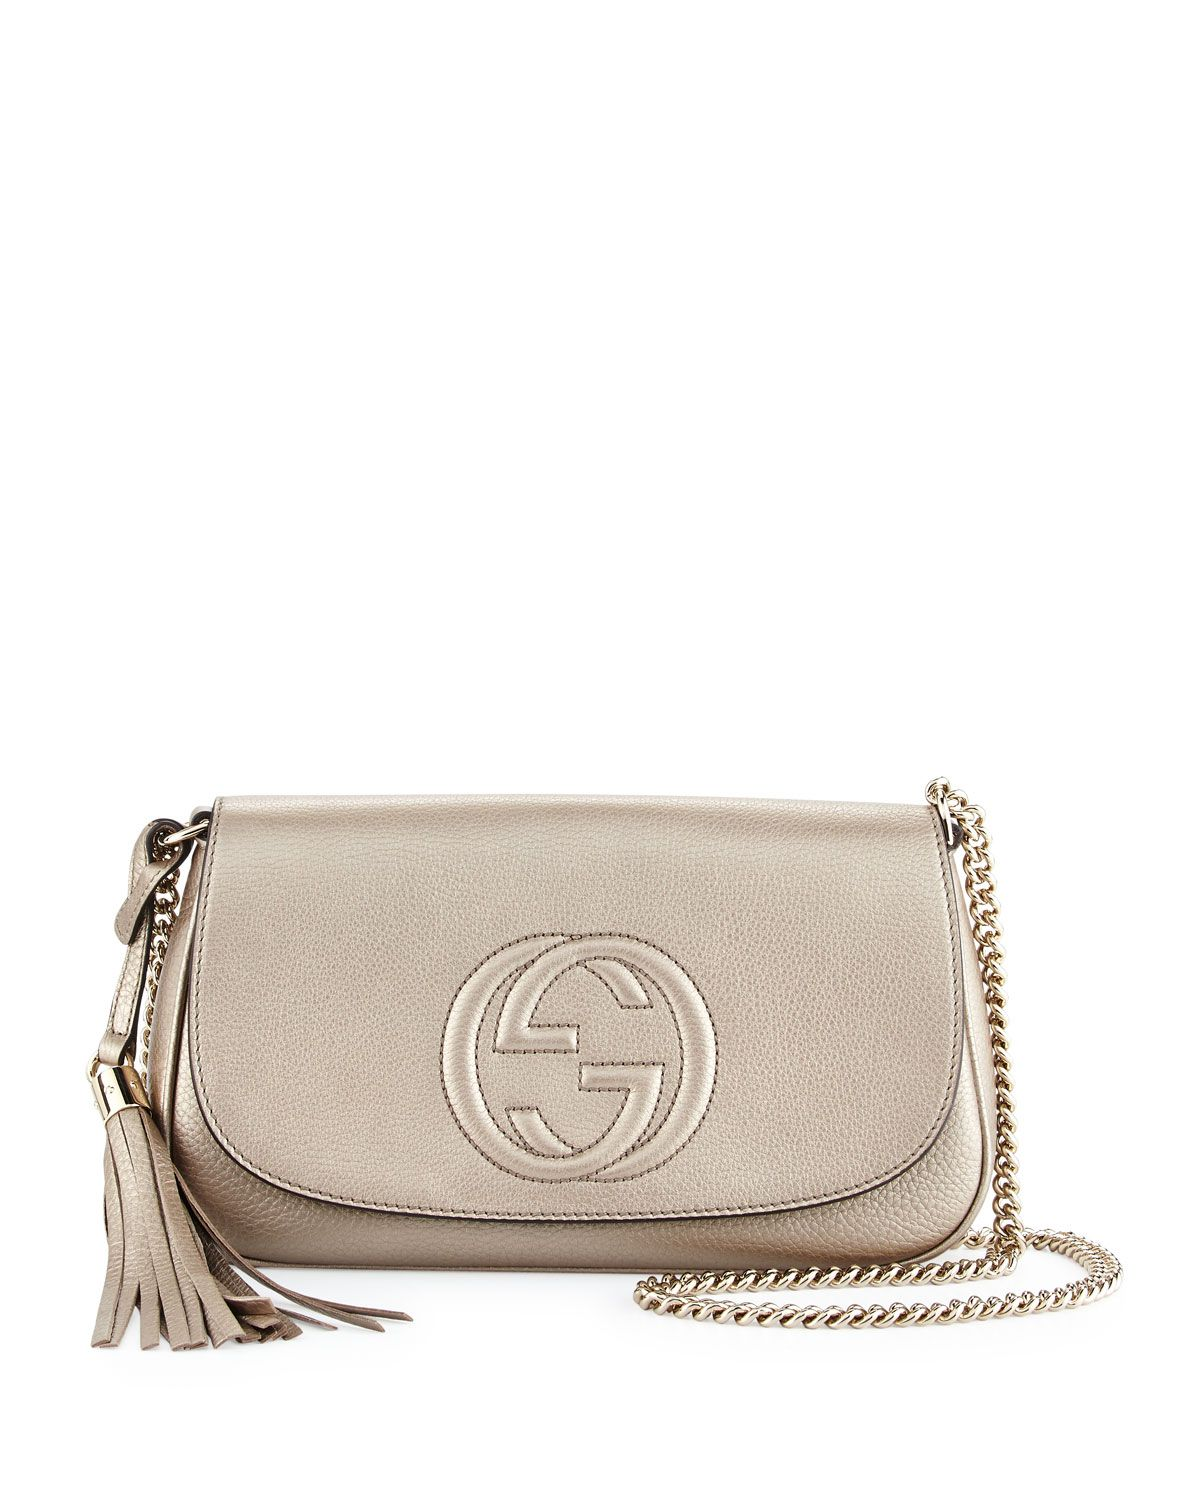 1137d5b38 Gucci Soho Metallic Crossbody Bag, Gold, Newgold | *Handbags ...